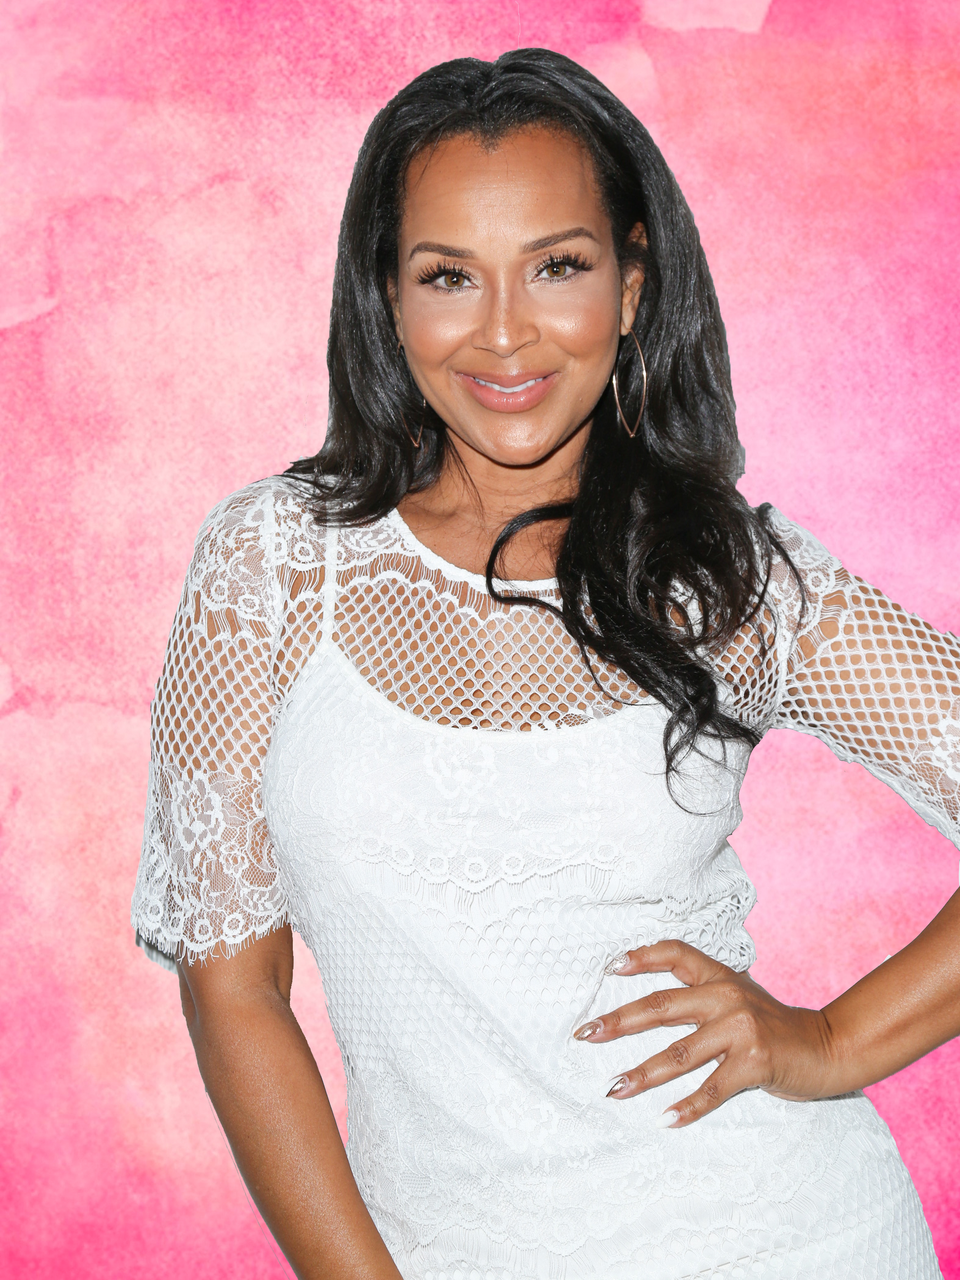 The Quick Read: LisaRaye McCoy's Home Burglarized, Robbed Of $160K Worth Of Valuables